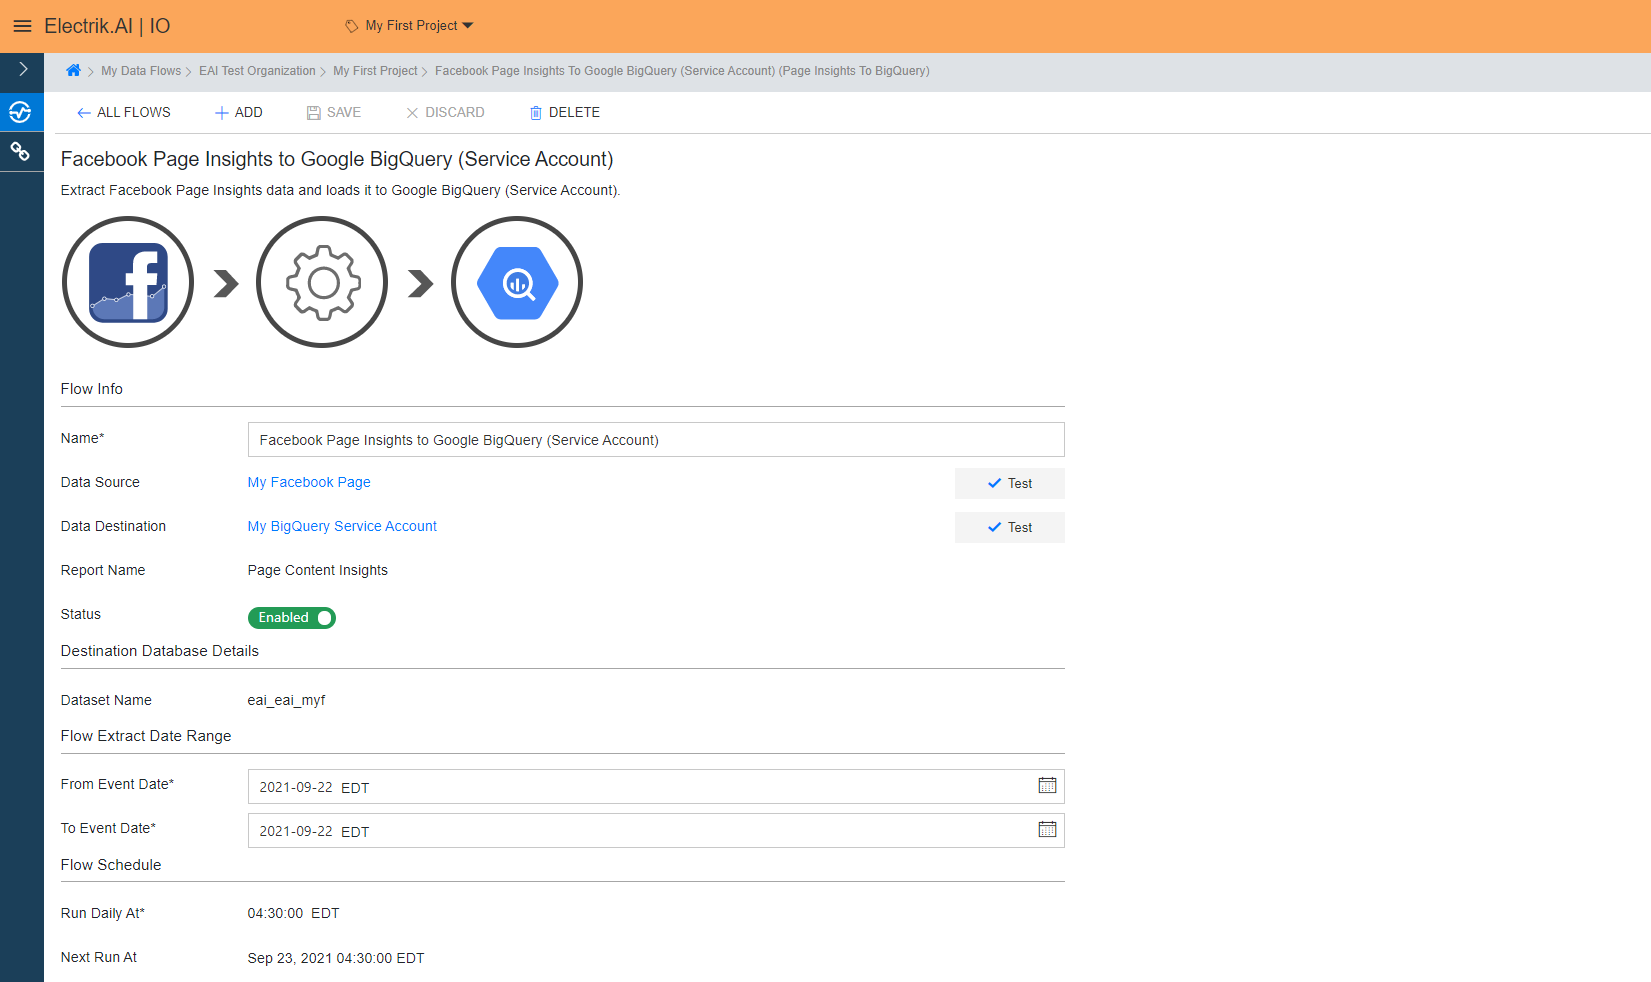 You have now successfully setup Facebook Page Insights Report to BigQuery